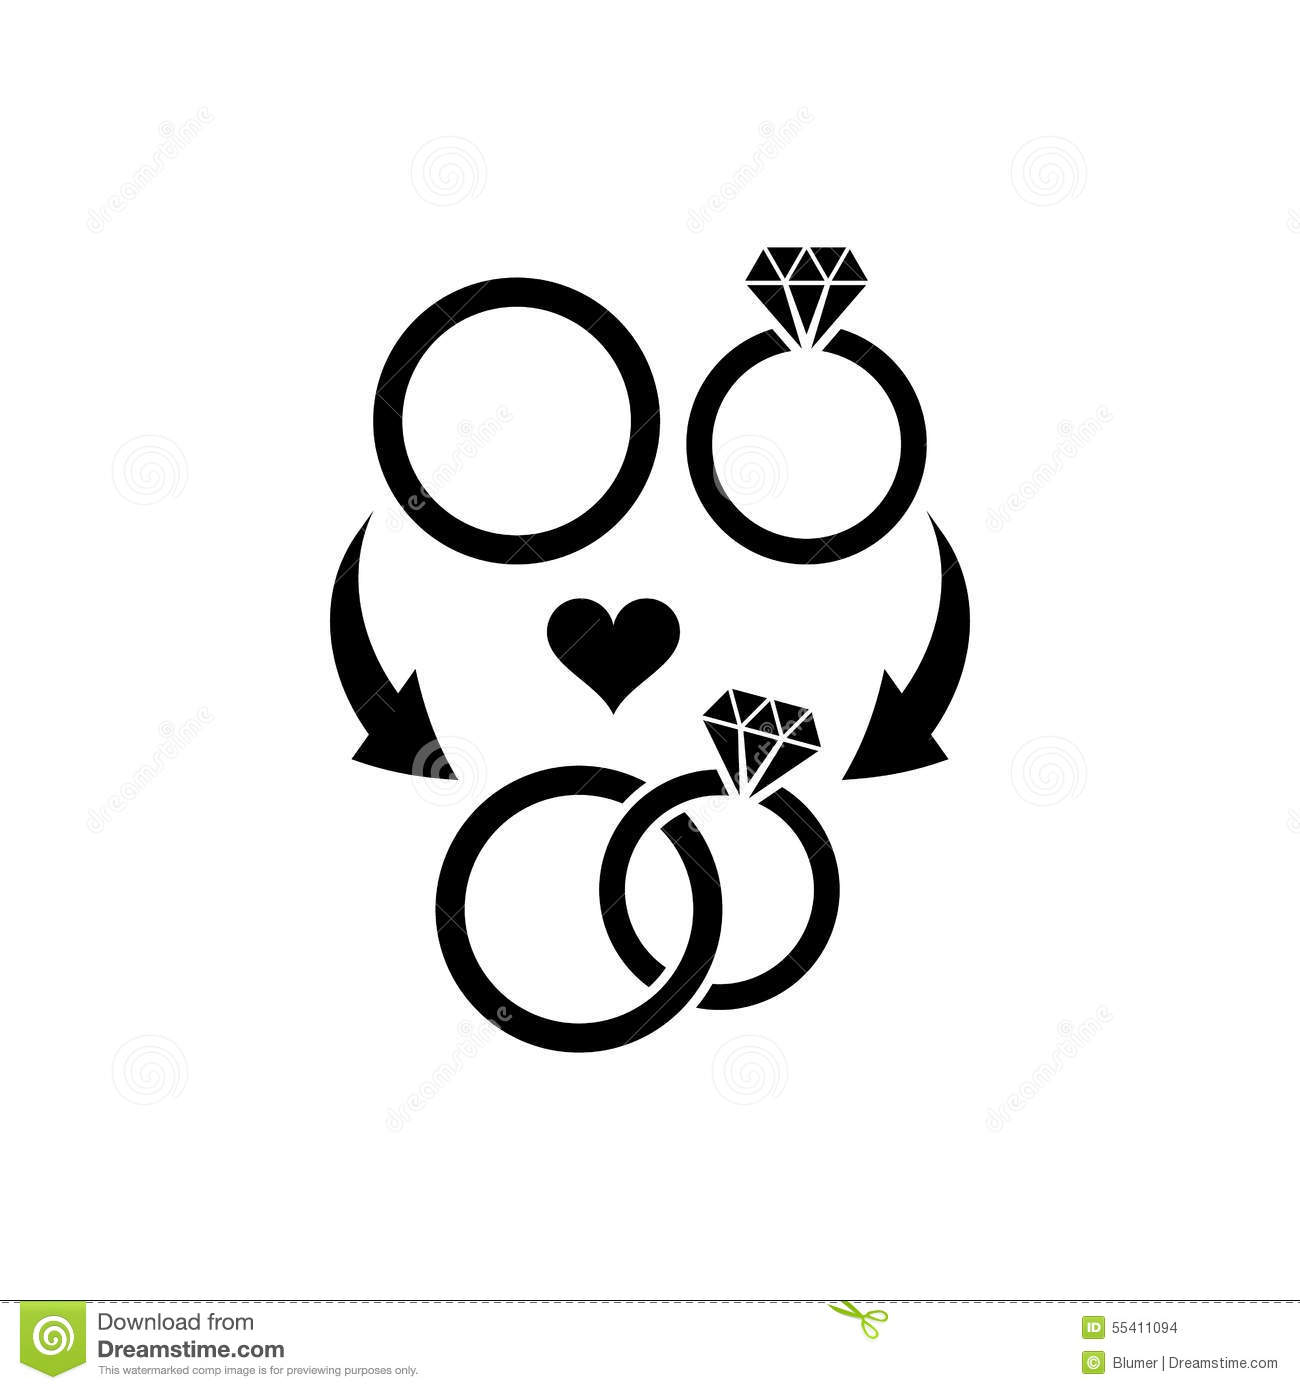 Wedding Rings Symbol Stock Vector - Image: 55411094